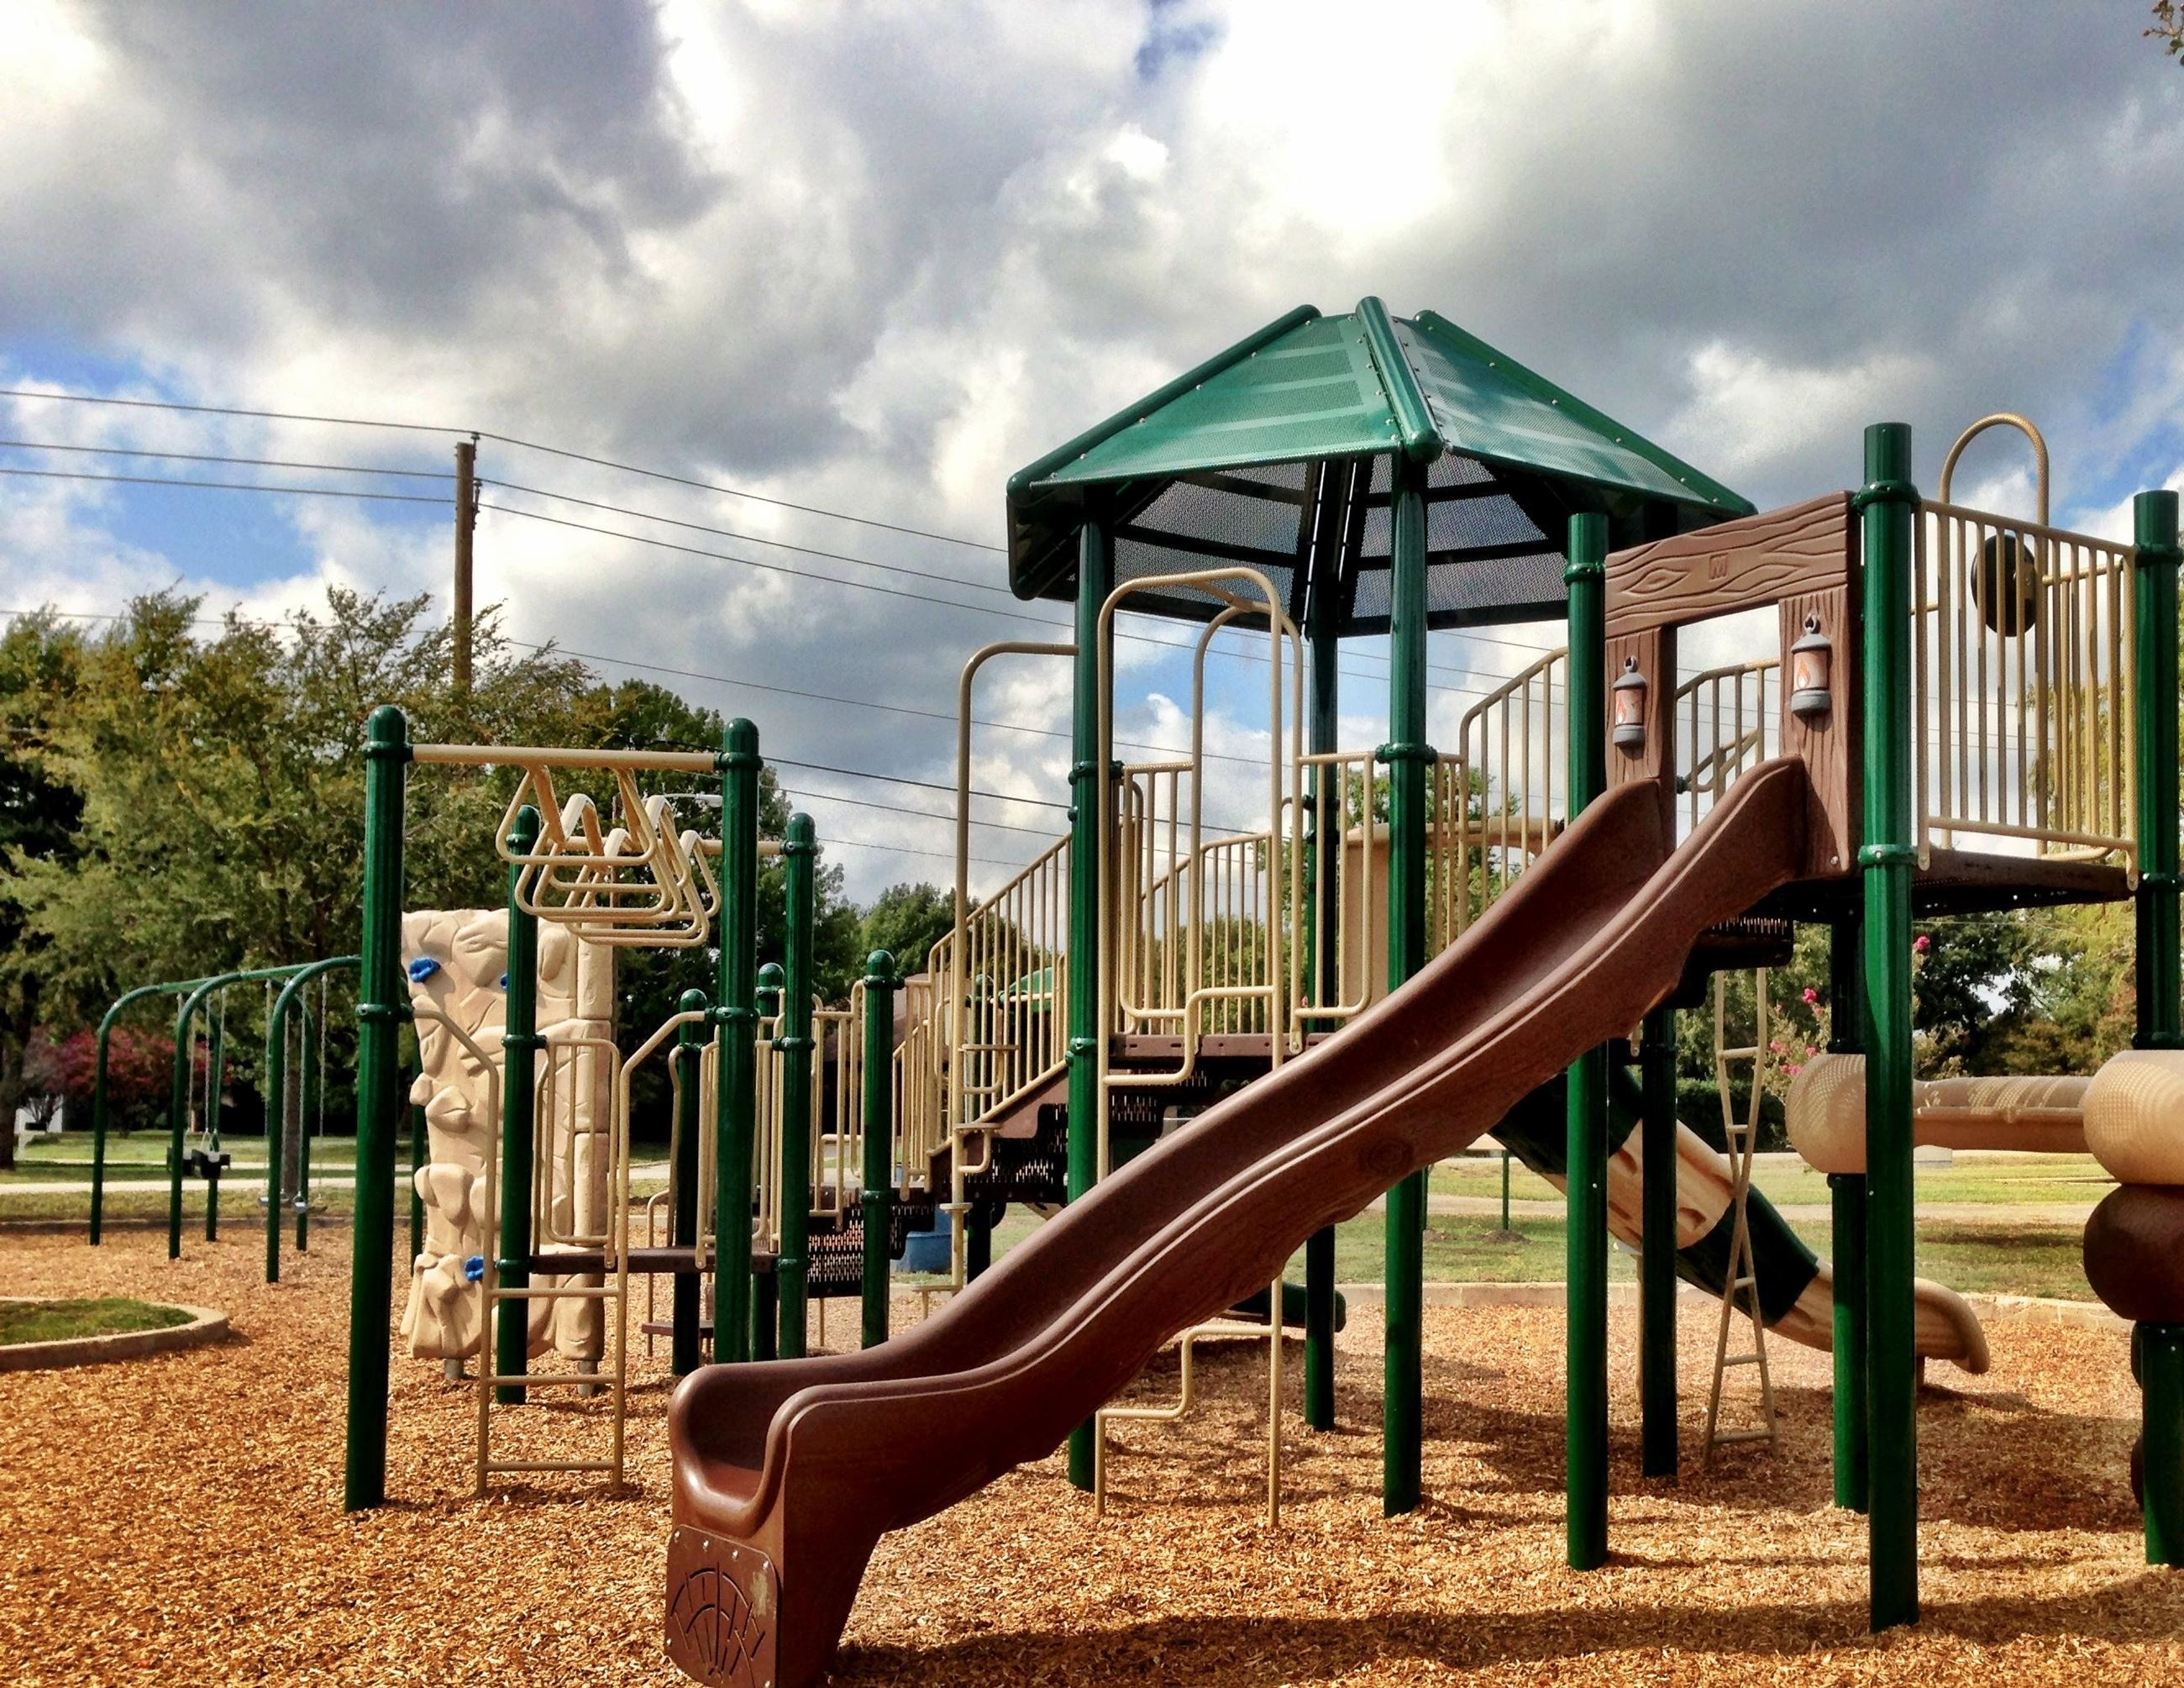 Green and brown jungle gym